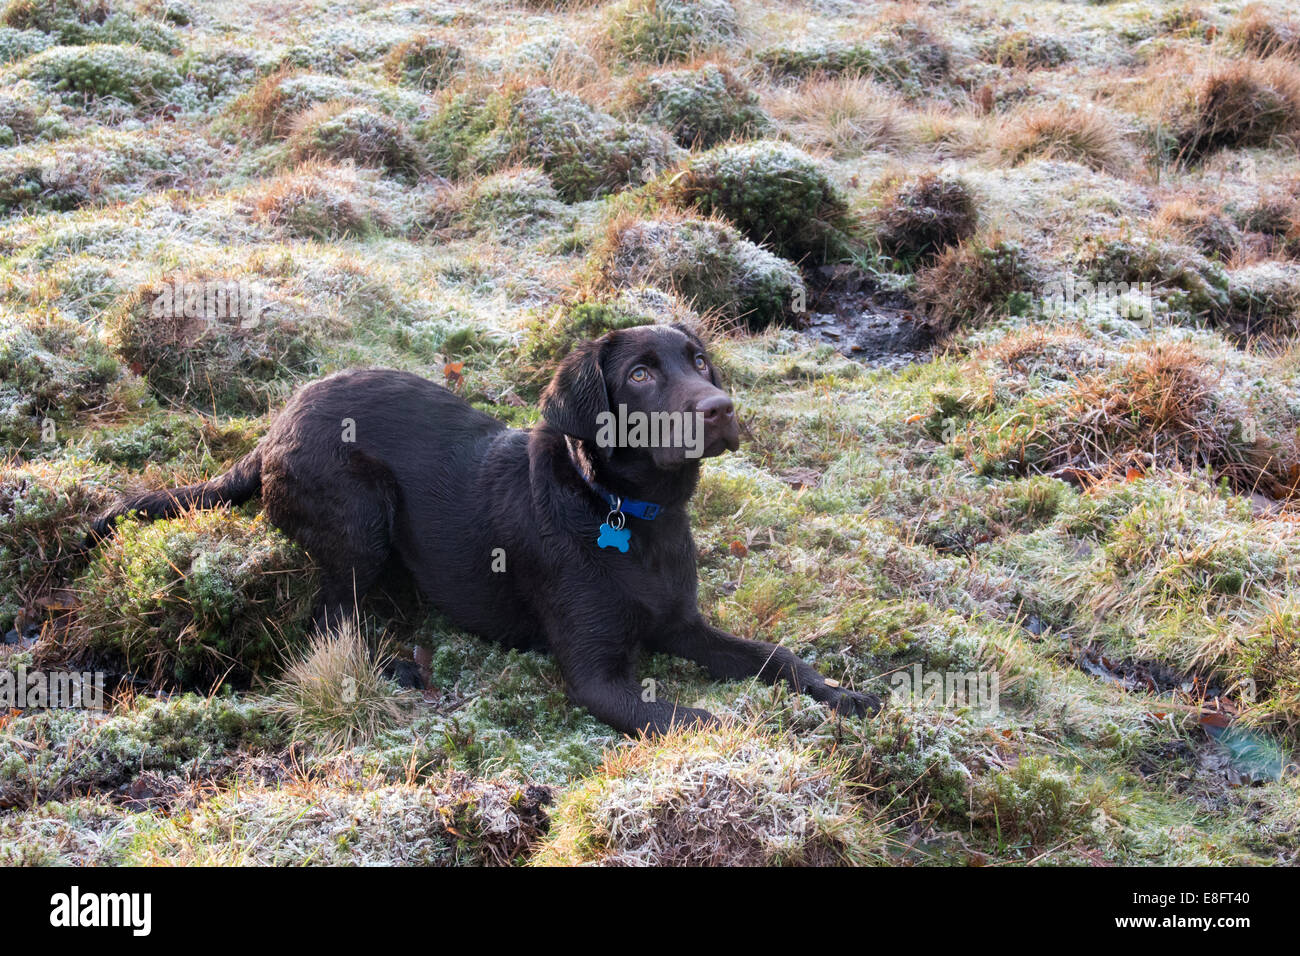 UK, England, West Midlands, Staffordshire, Downs Banks, Chocolate labrador puppy lying down on frosty grass - Stock Image